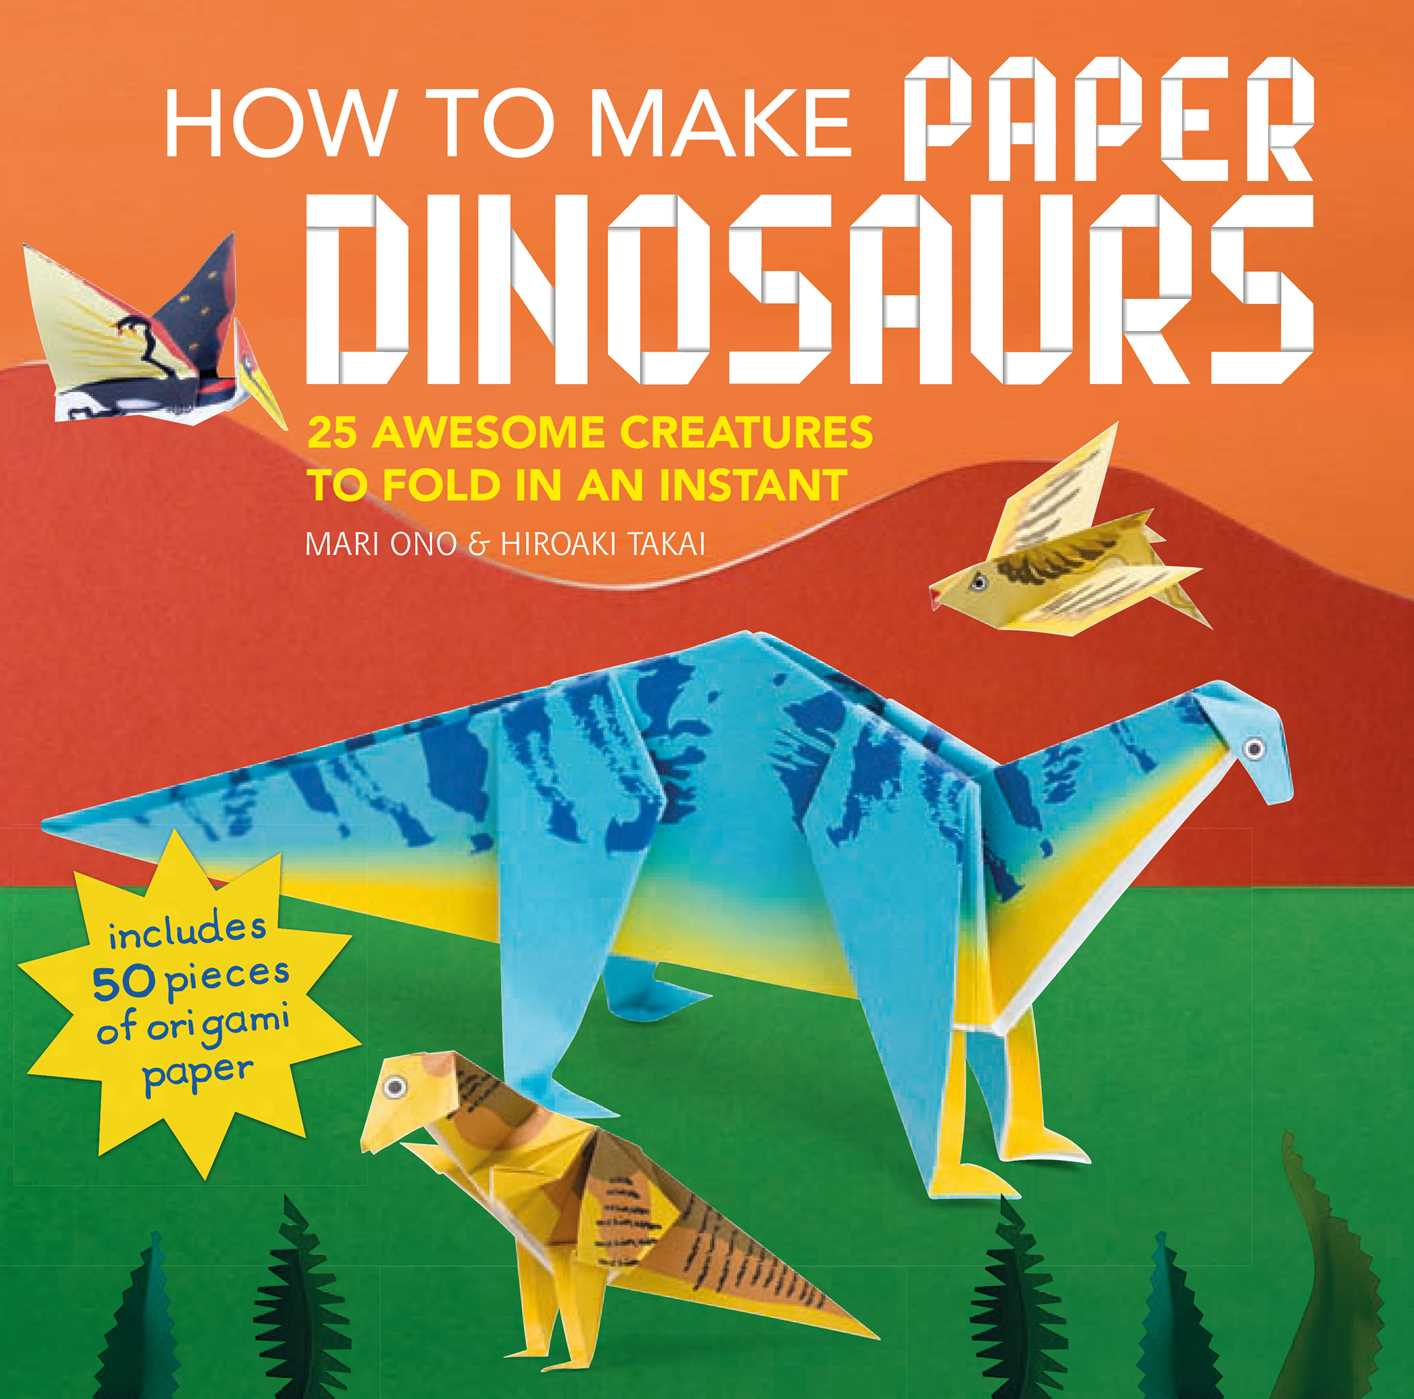 How to make paper dinosaurs 9781782496335 hr